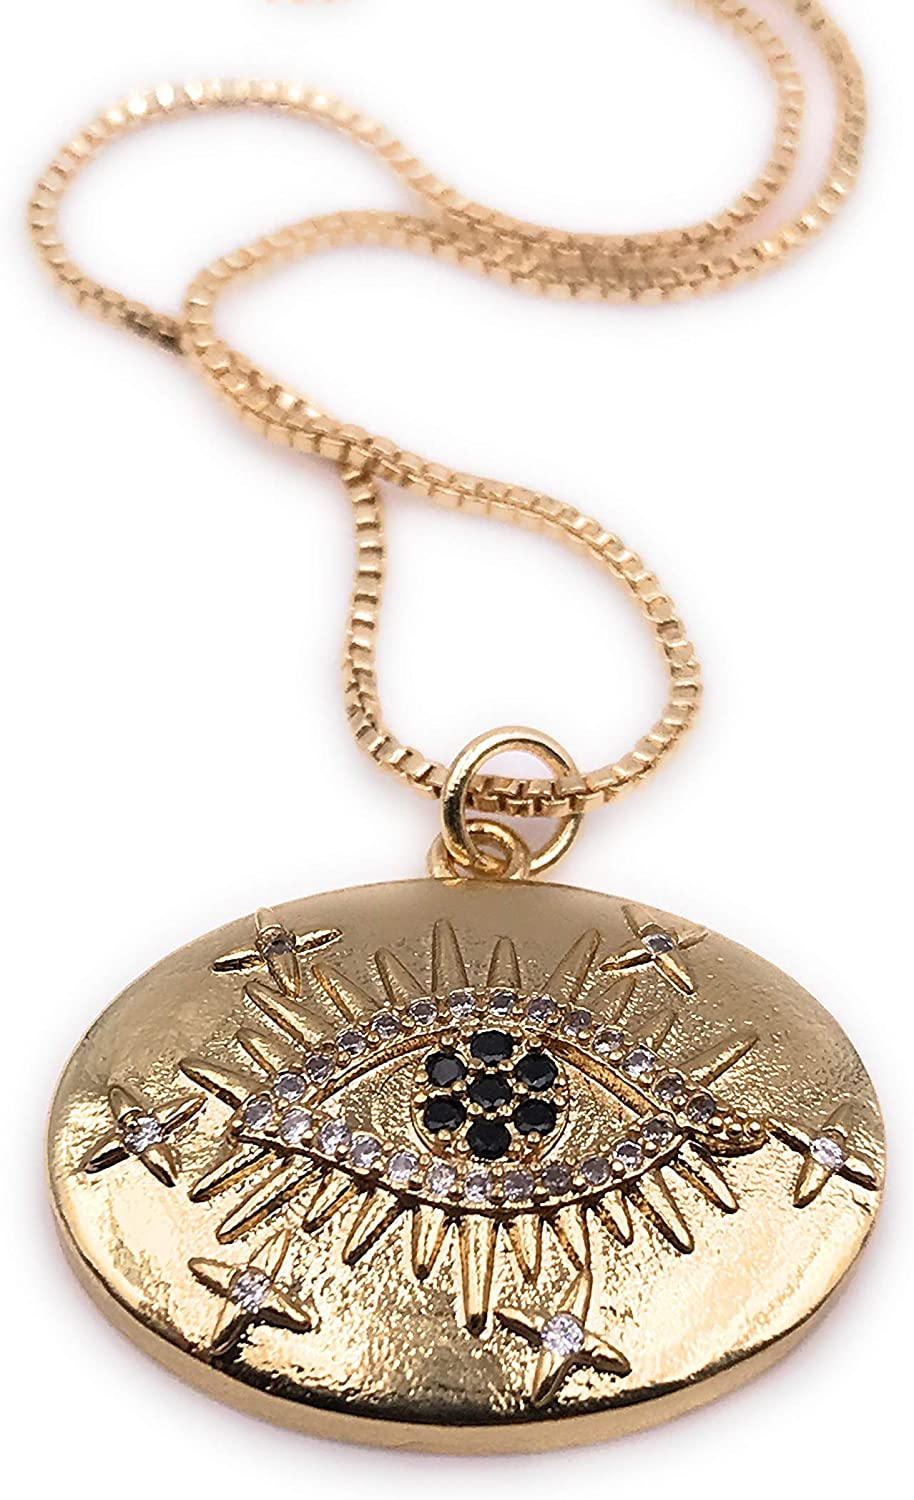 LESLIE BOULES Evil Eye Pendant Necklace 18 Inches Length Fashion Jewelry 18K Gold Plated Chain